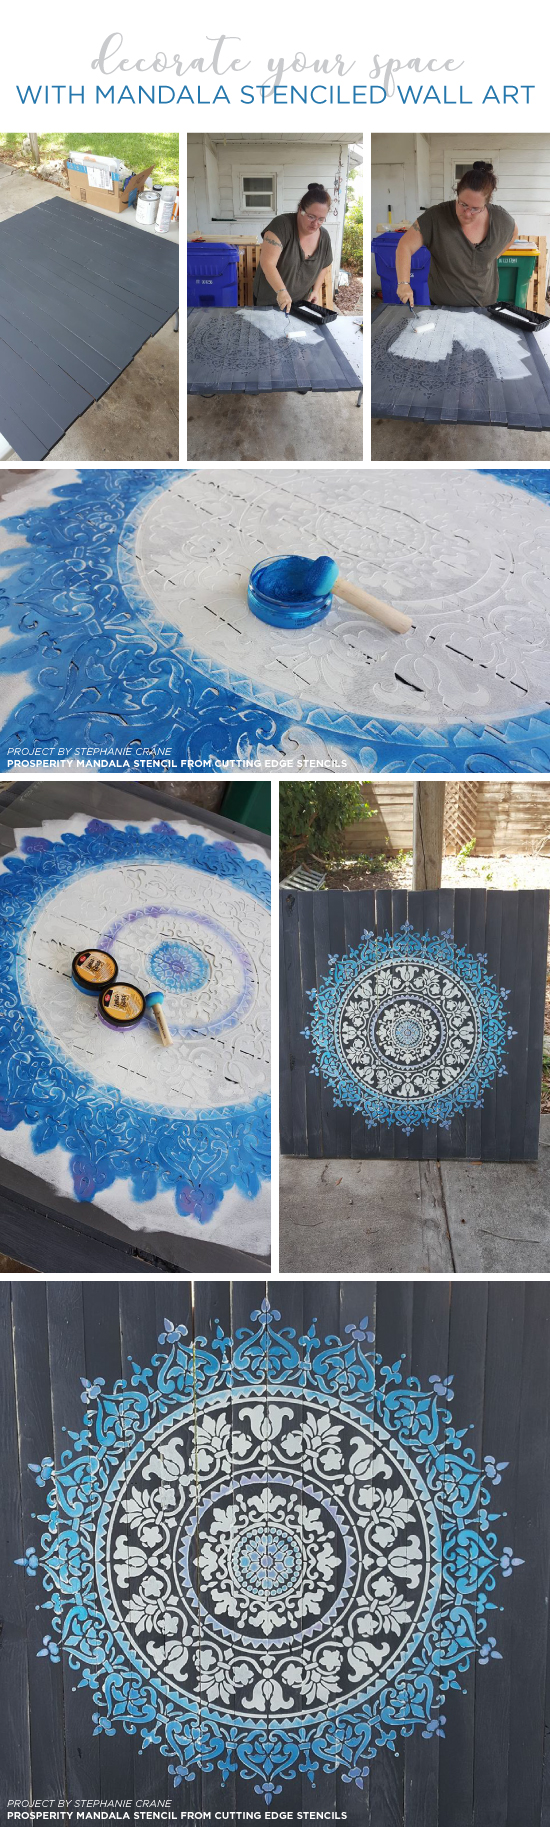 Cutting Edge Stencils shares how to stencil DIY reclaimed wood wall art using a Mandala Stencil pattern.  http://www.cuttingedgestencils.com/prosperity-mandala-stencil-yoga-mandala-stencils-designs.html